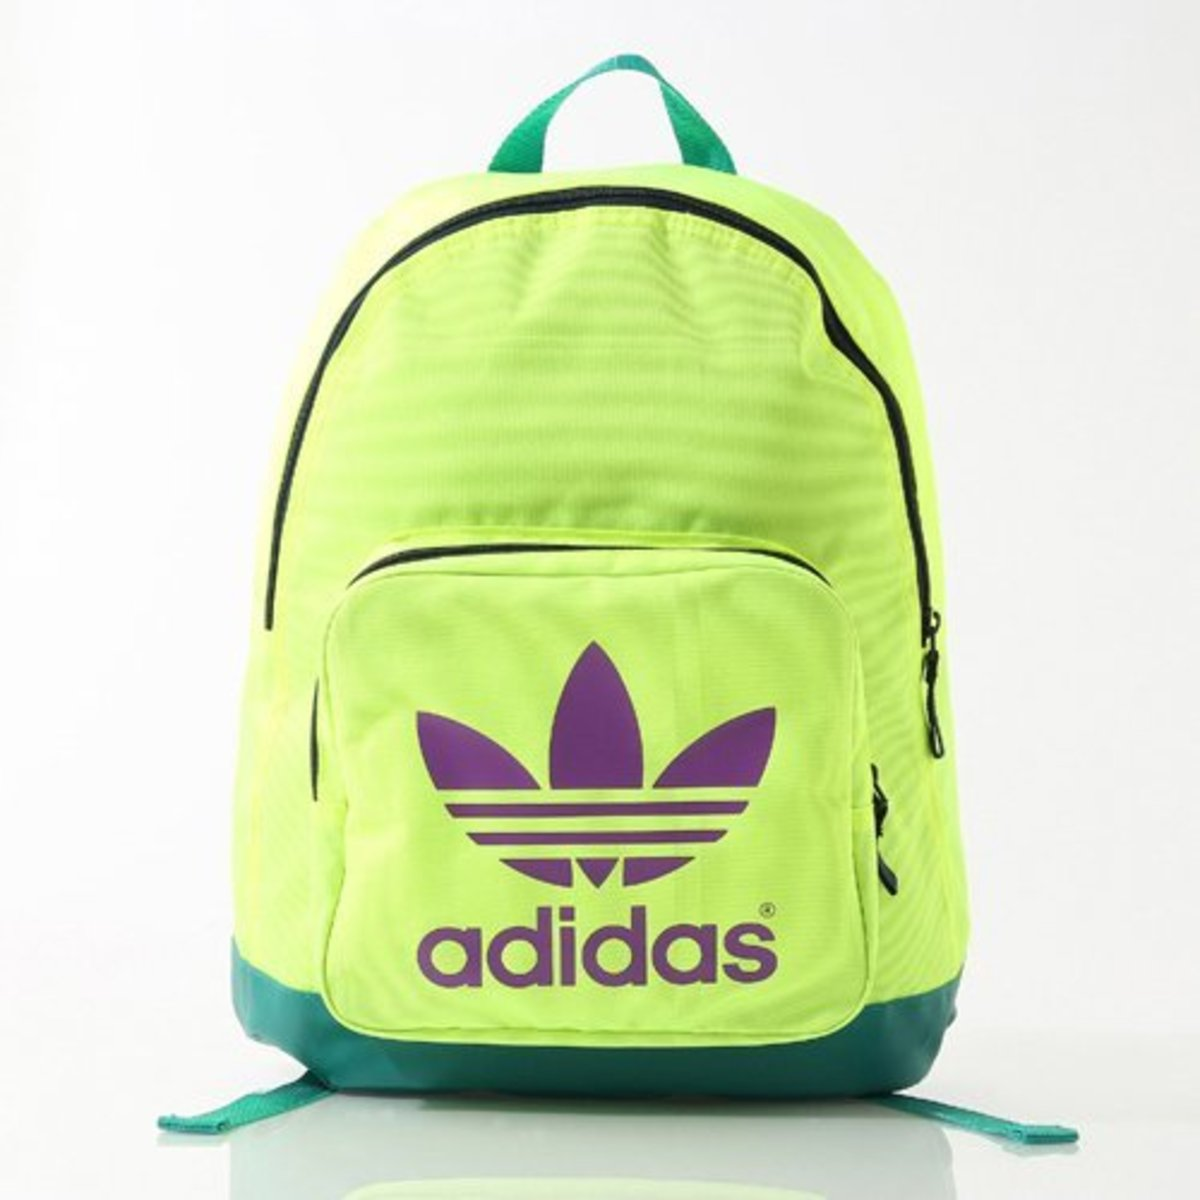 (Green Backpack) Japan❤️adidas Originals AC BPACK CLASS Backpack